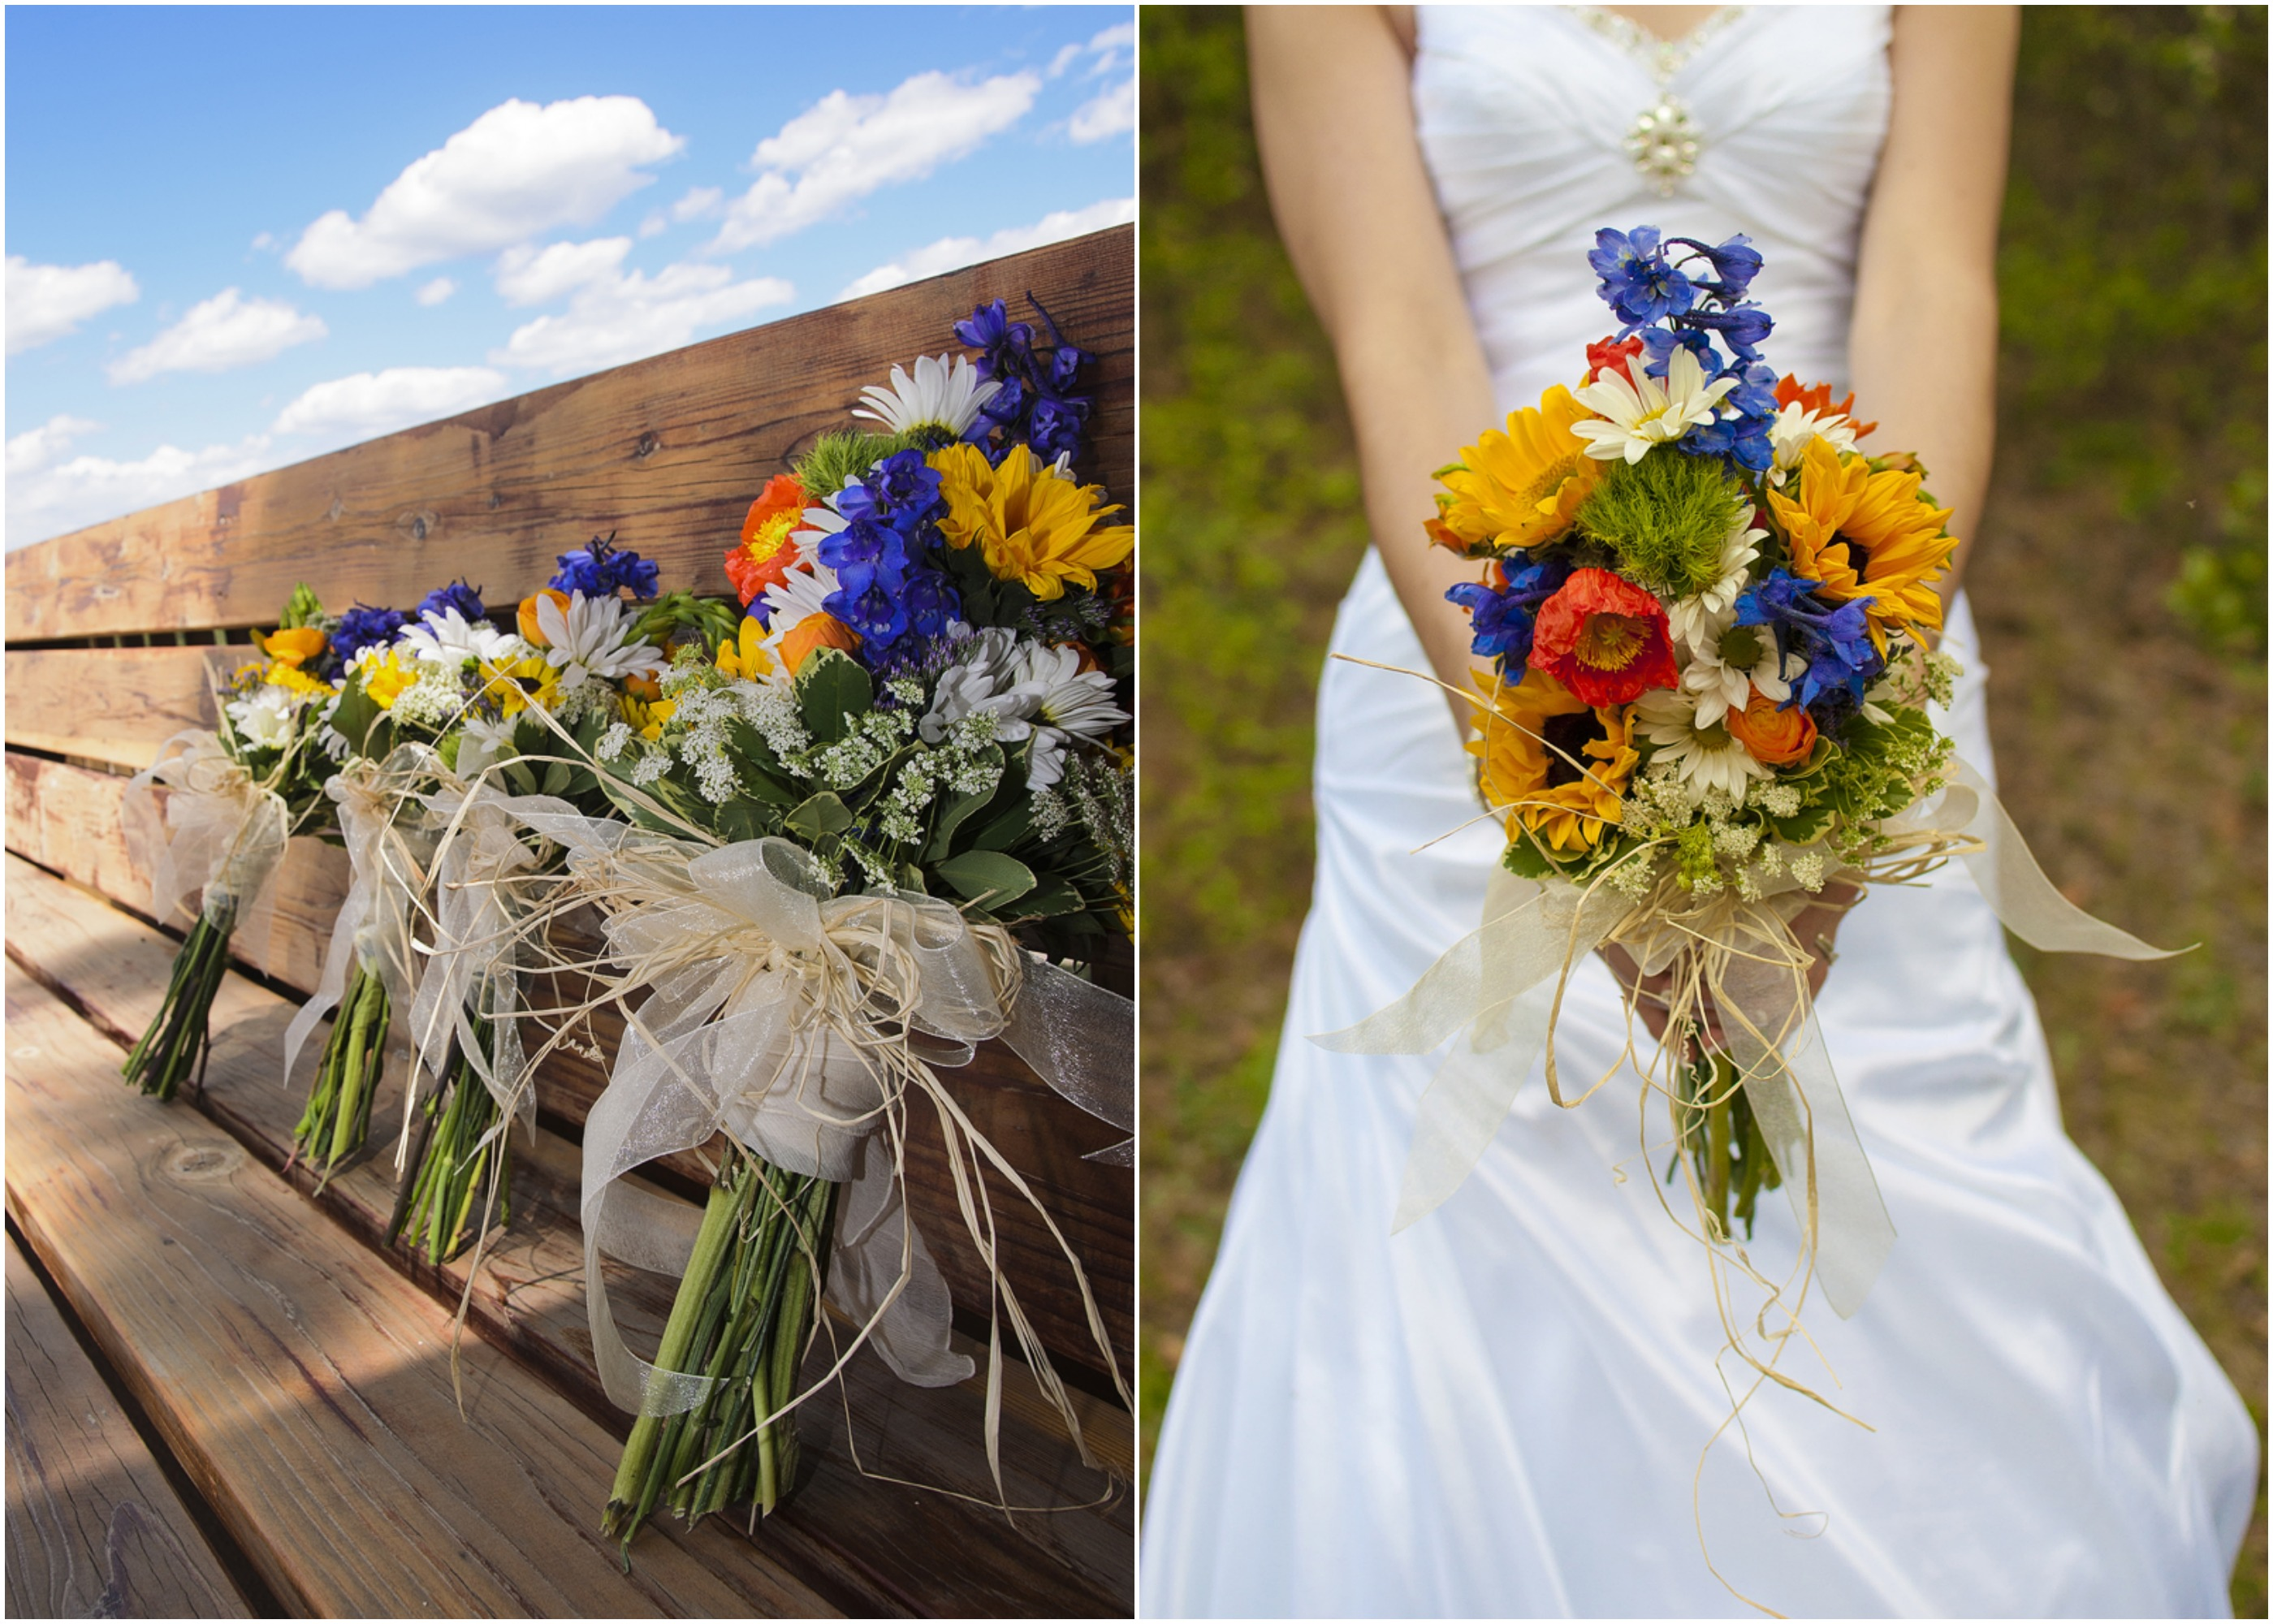 Colorado Rustic Wedding - Rustic Wedding Chic - photo#13